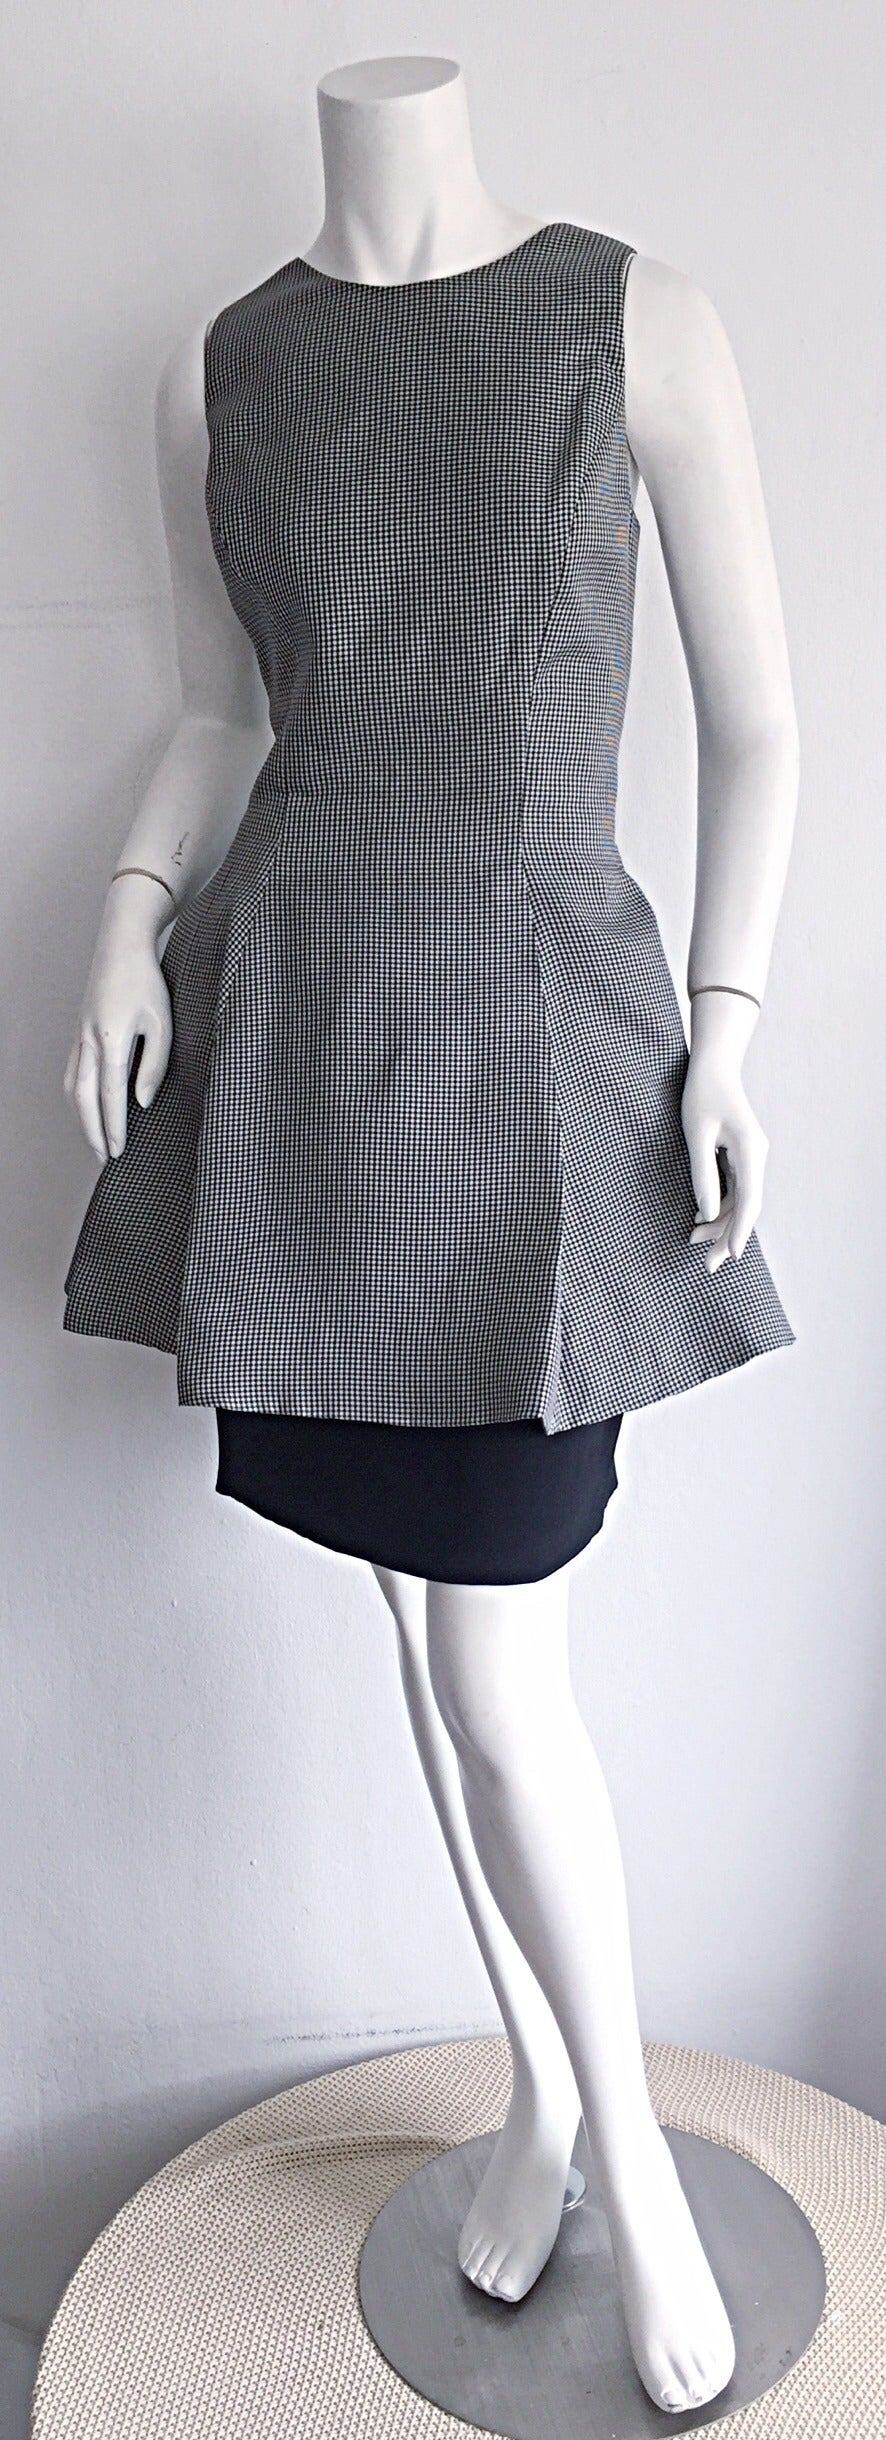 Vintage James Purcell Black + White Silk Gingham Fit N' Flare Dress Size 8 2